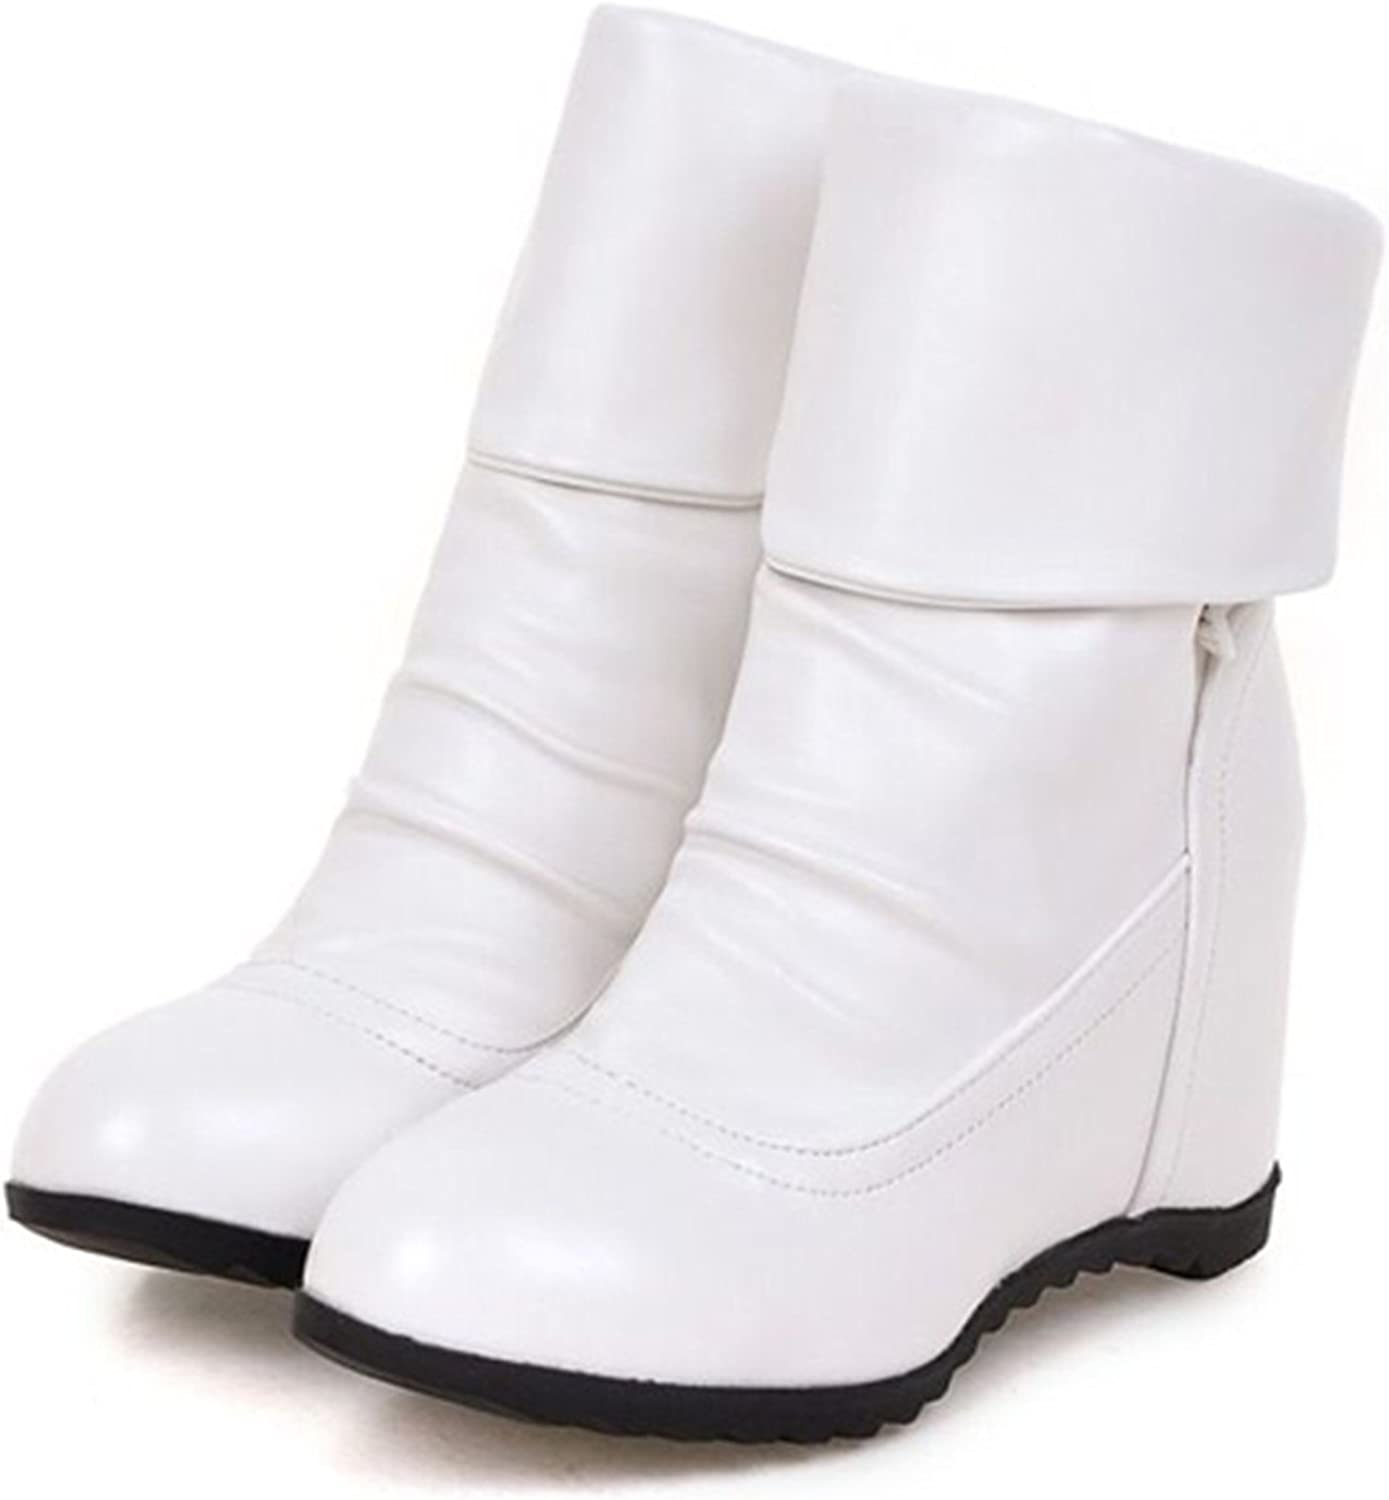 Thytas Plus Size Winter Mid-Calf Women Boots White Flats Heels Half Boots Autumn Snow shoes